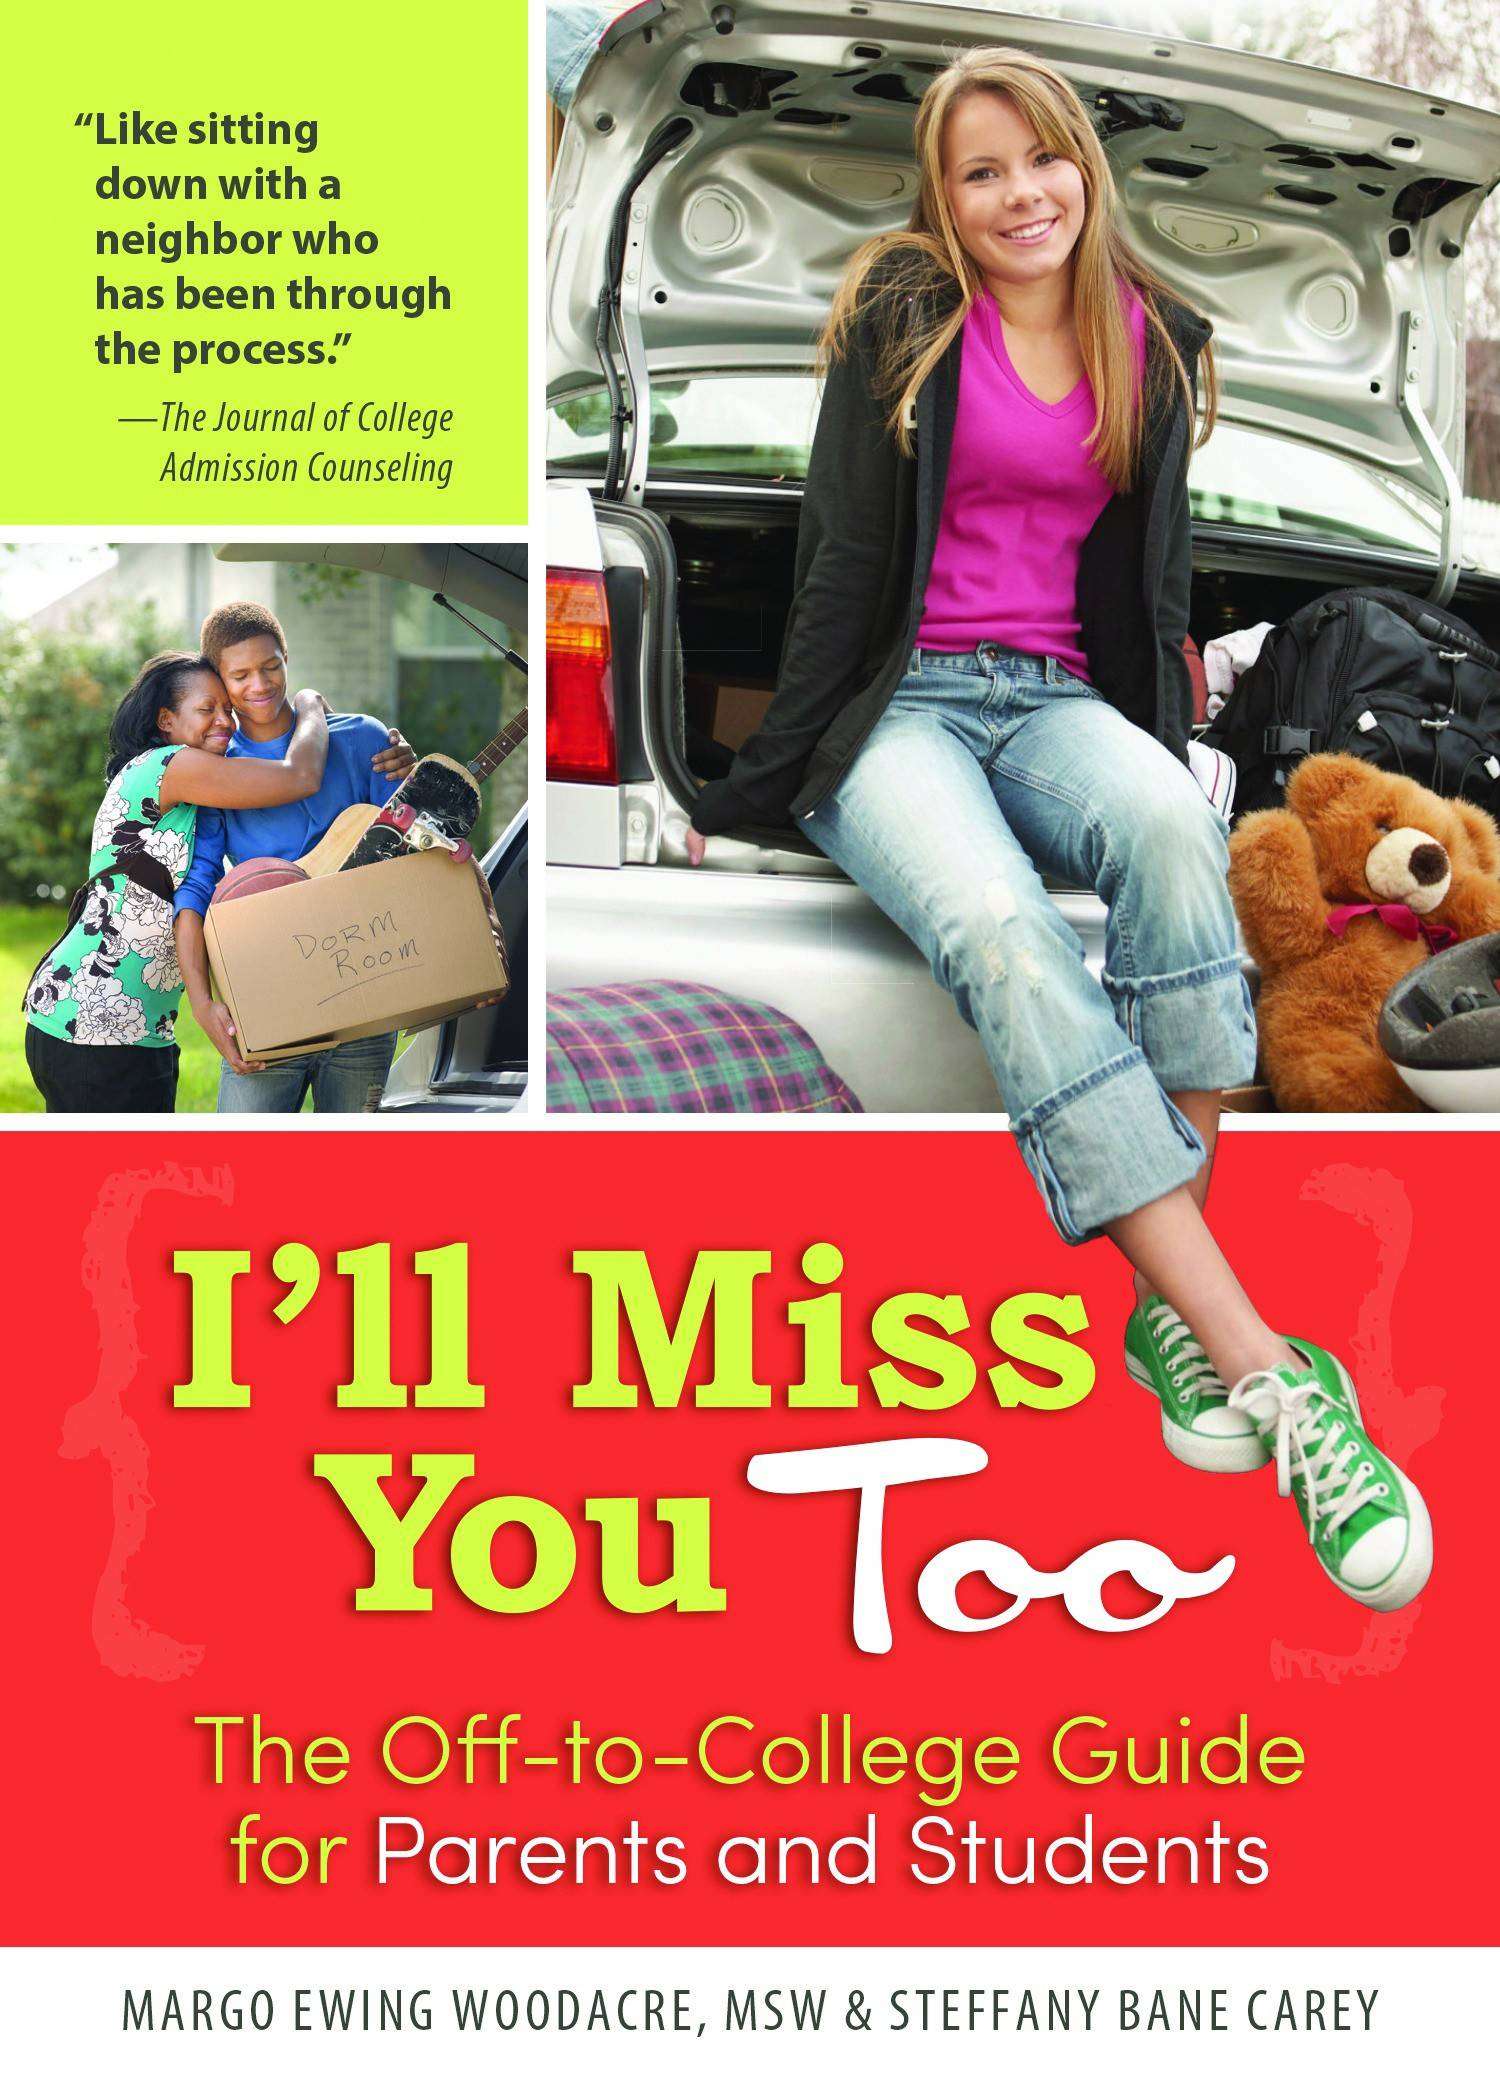 """I'll Miss You Too"" by Margo Ewing Woodacre, MSW & Steffany Bane Carey (2015, Sourcebooks) $14.99, 202 pages."